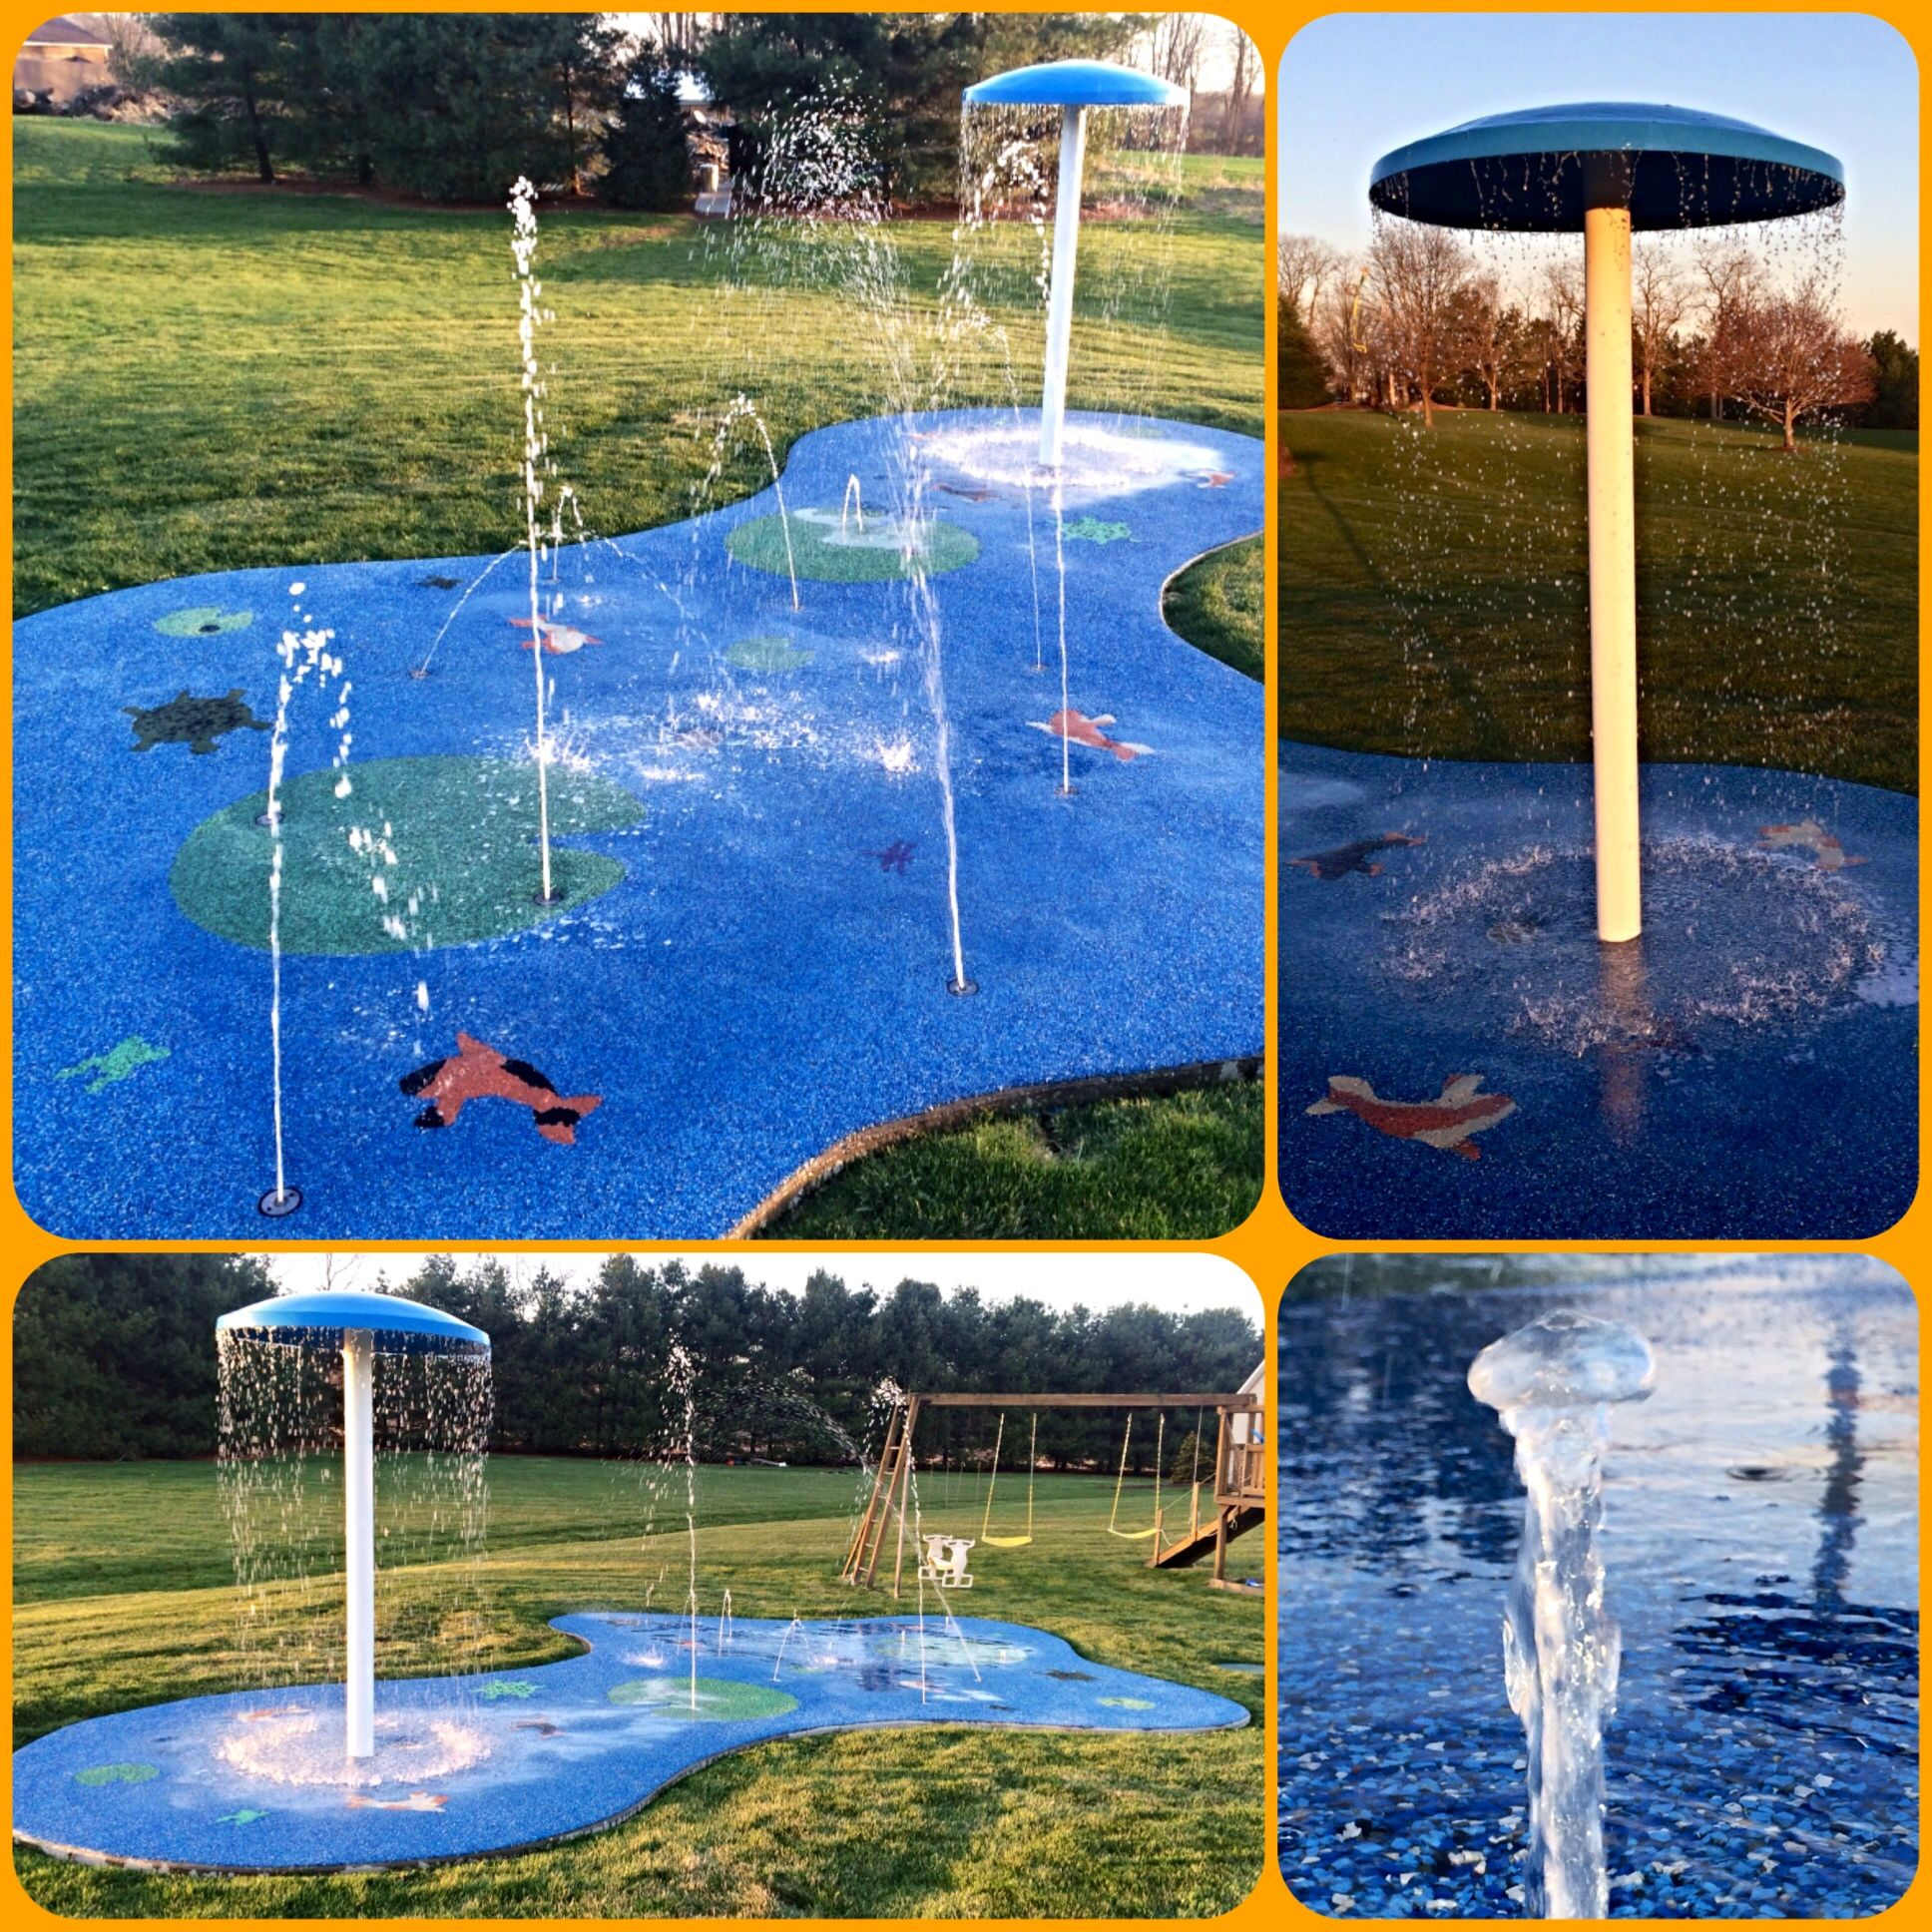 Commercial residential splash pads installed by my